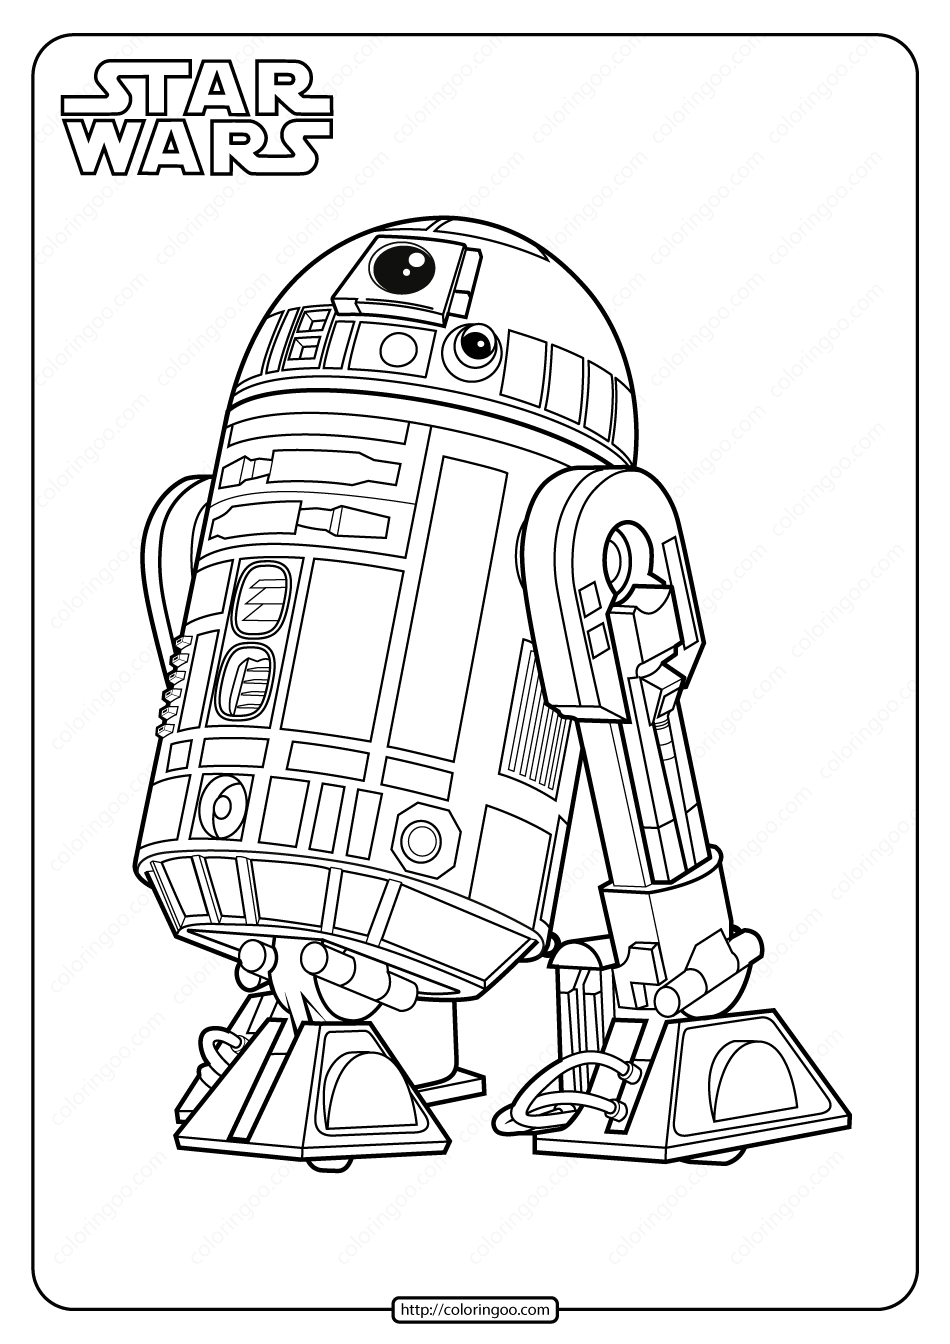 Star Wars R2 D2 Printable Coloring Pages Star Wars Coloring Book Star Wars Drawings Star Wars Painting